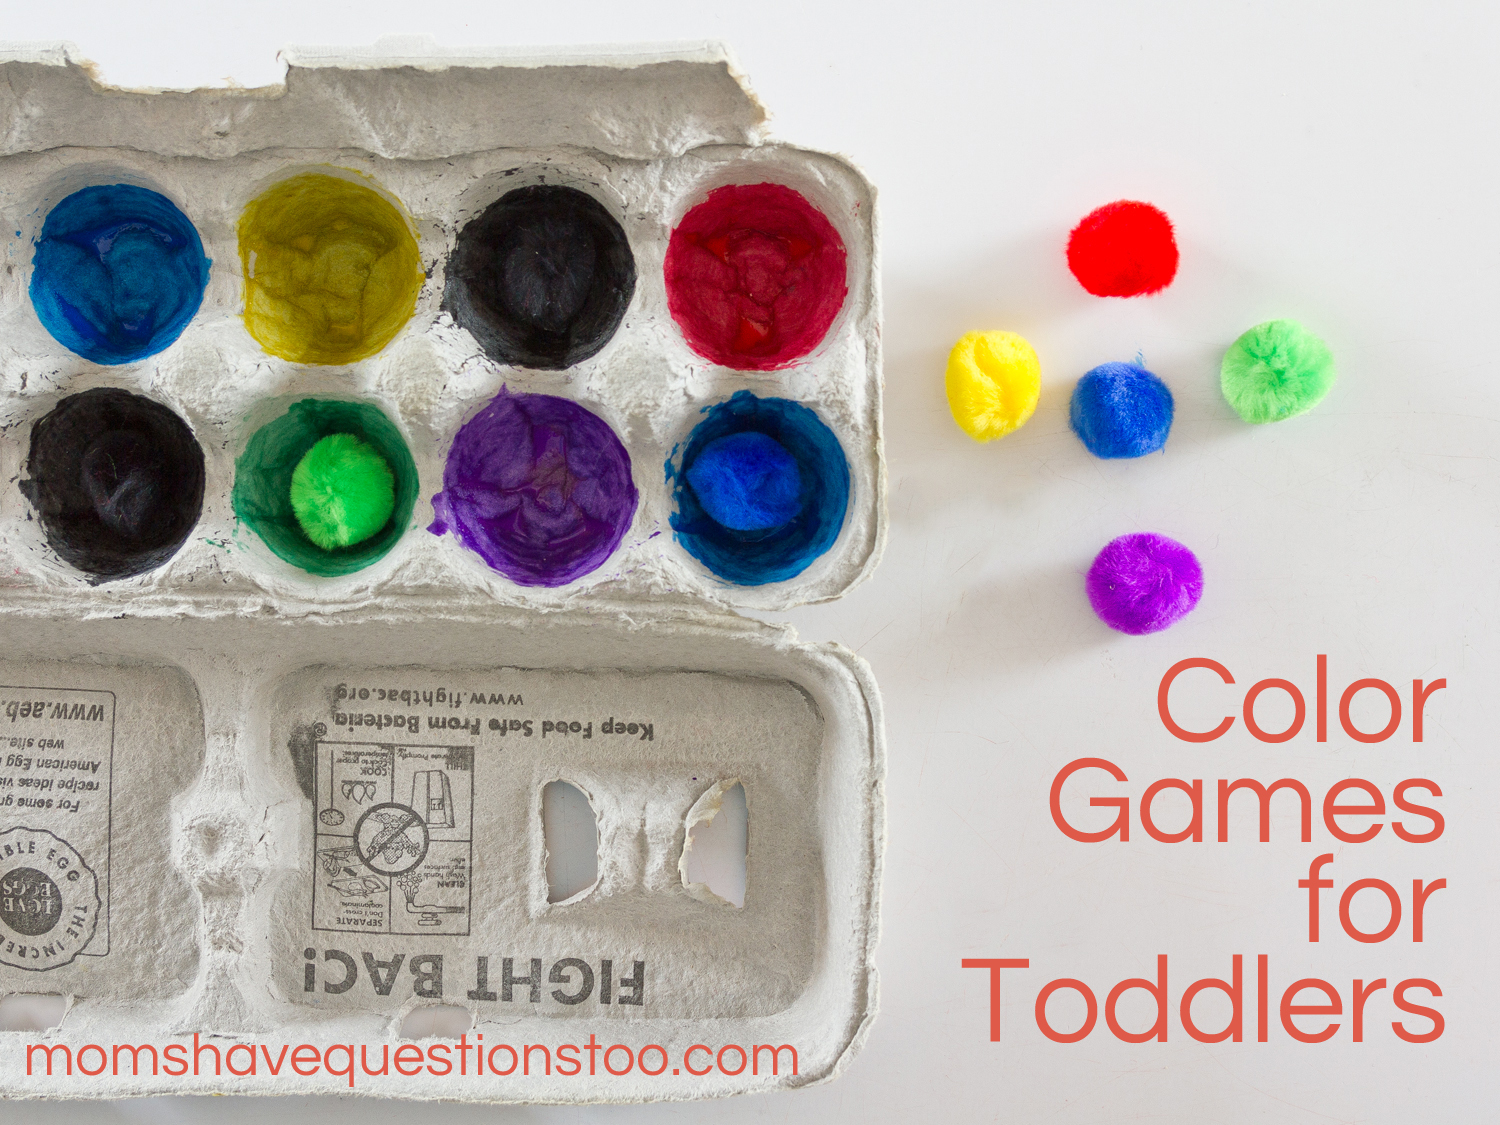 Toddler color learning games - Color Games For Toddlers Moms Have Questions Too